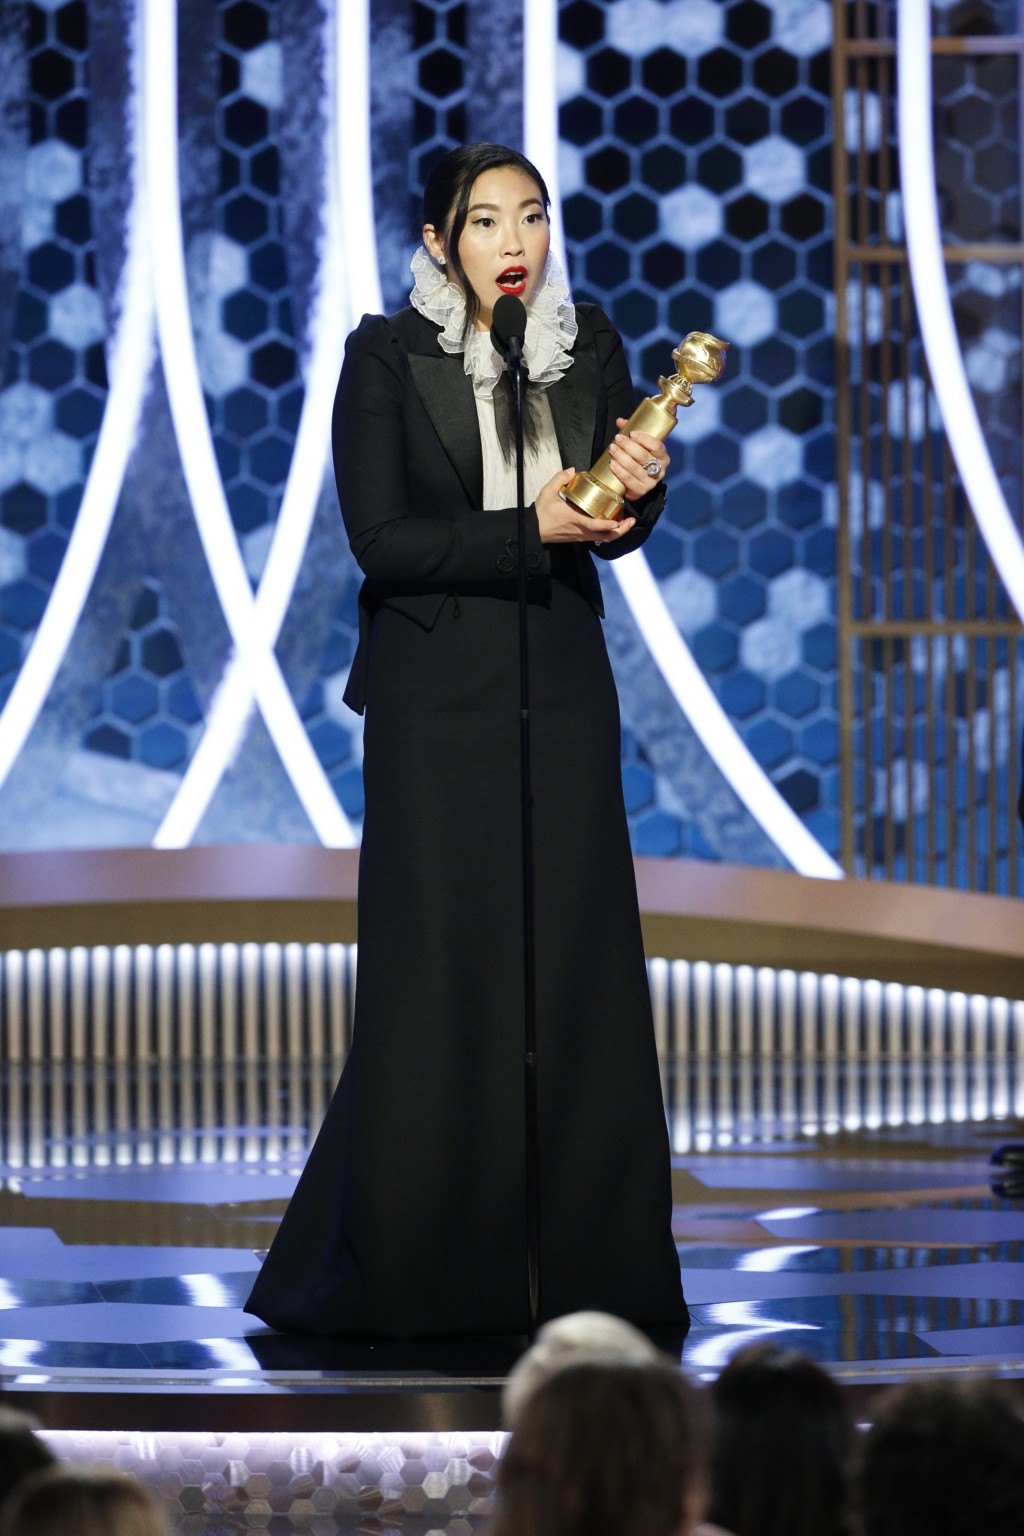 """This image released by NBC shows Awkwafina accepting the award for best actress in a motion picture comedy for her role in """"The Farewell"""" at the 77th ..."""